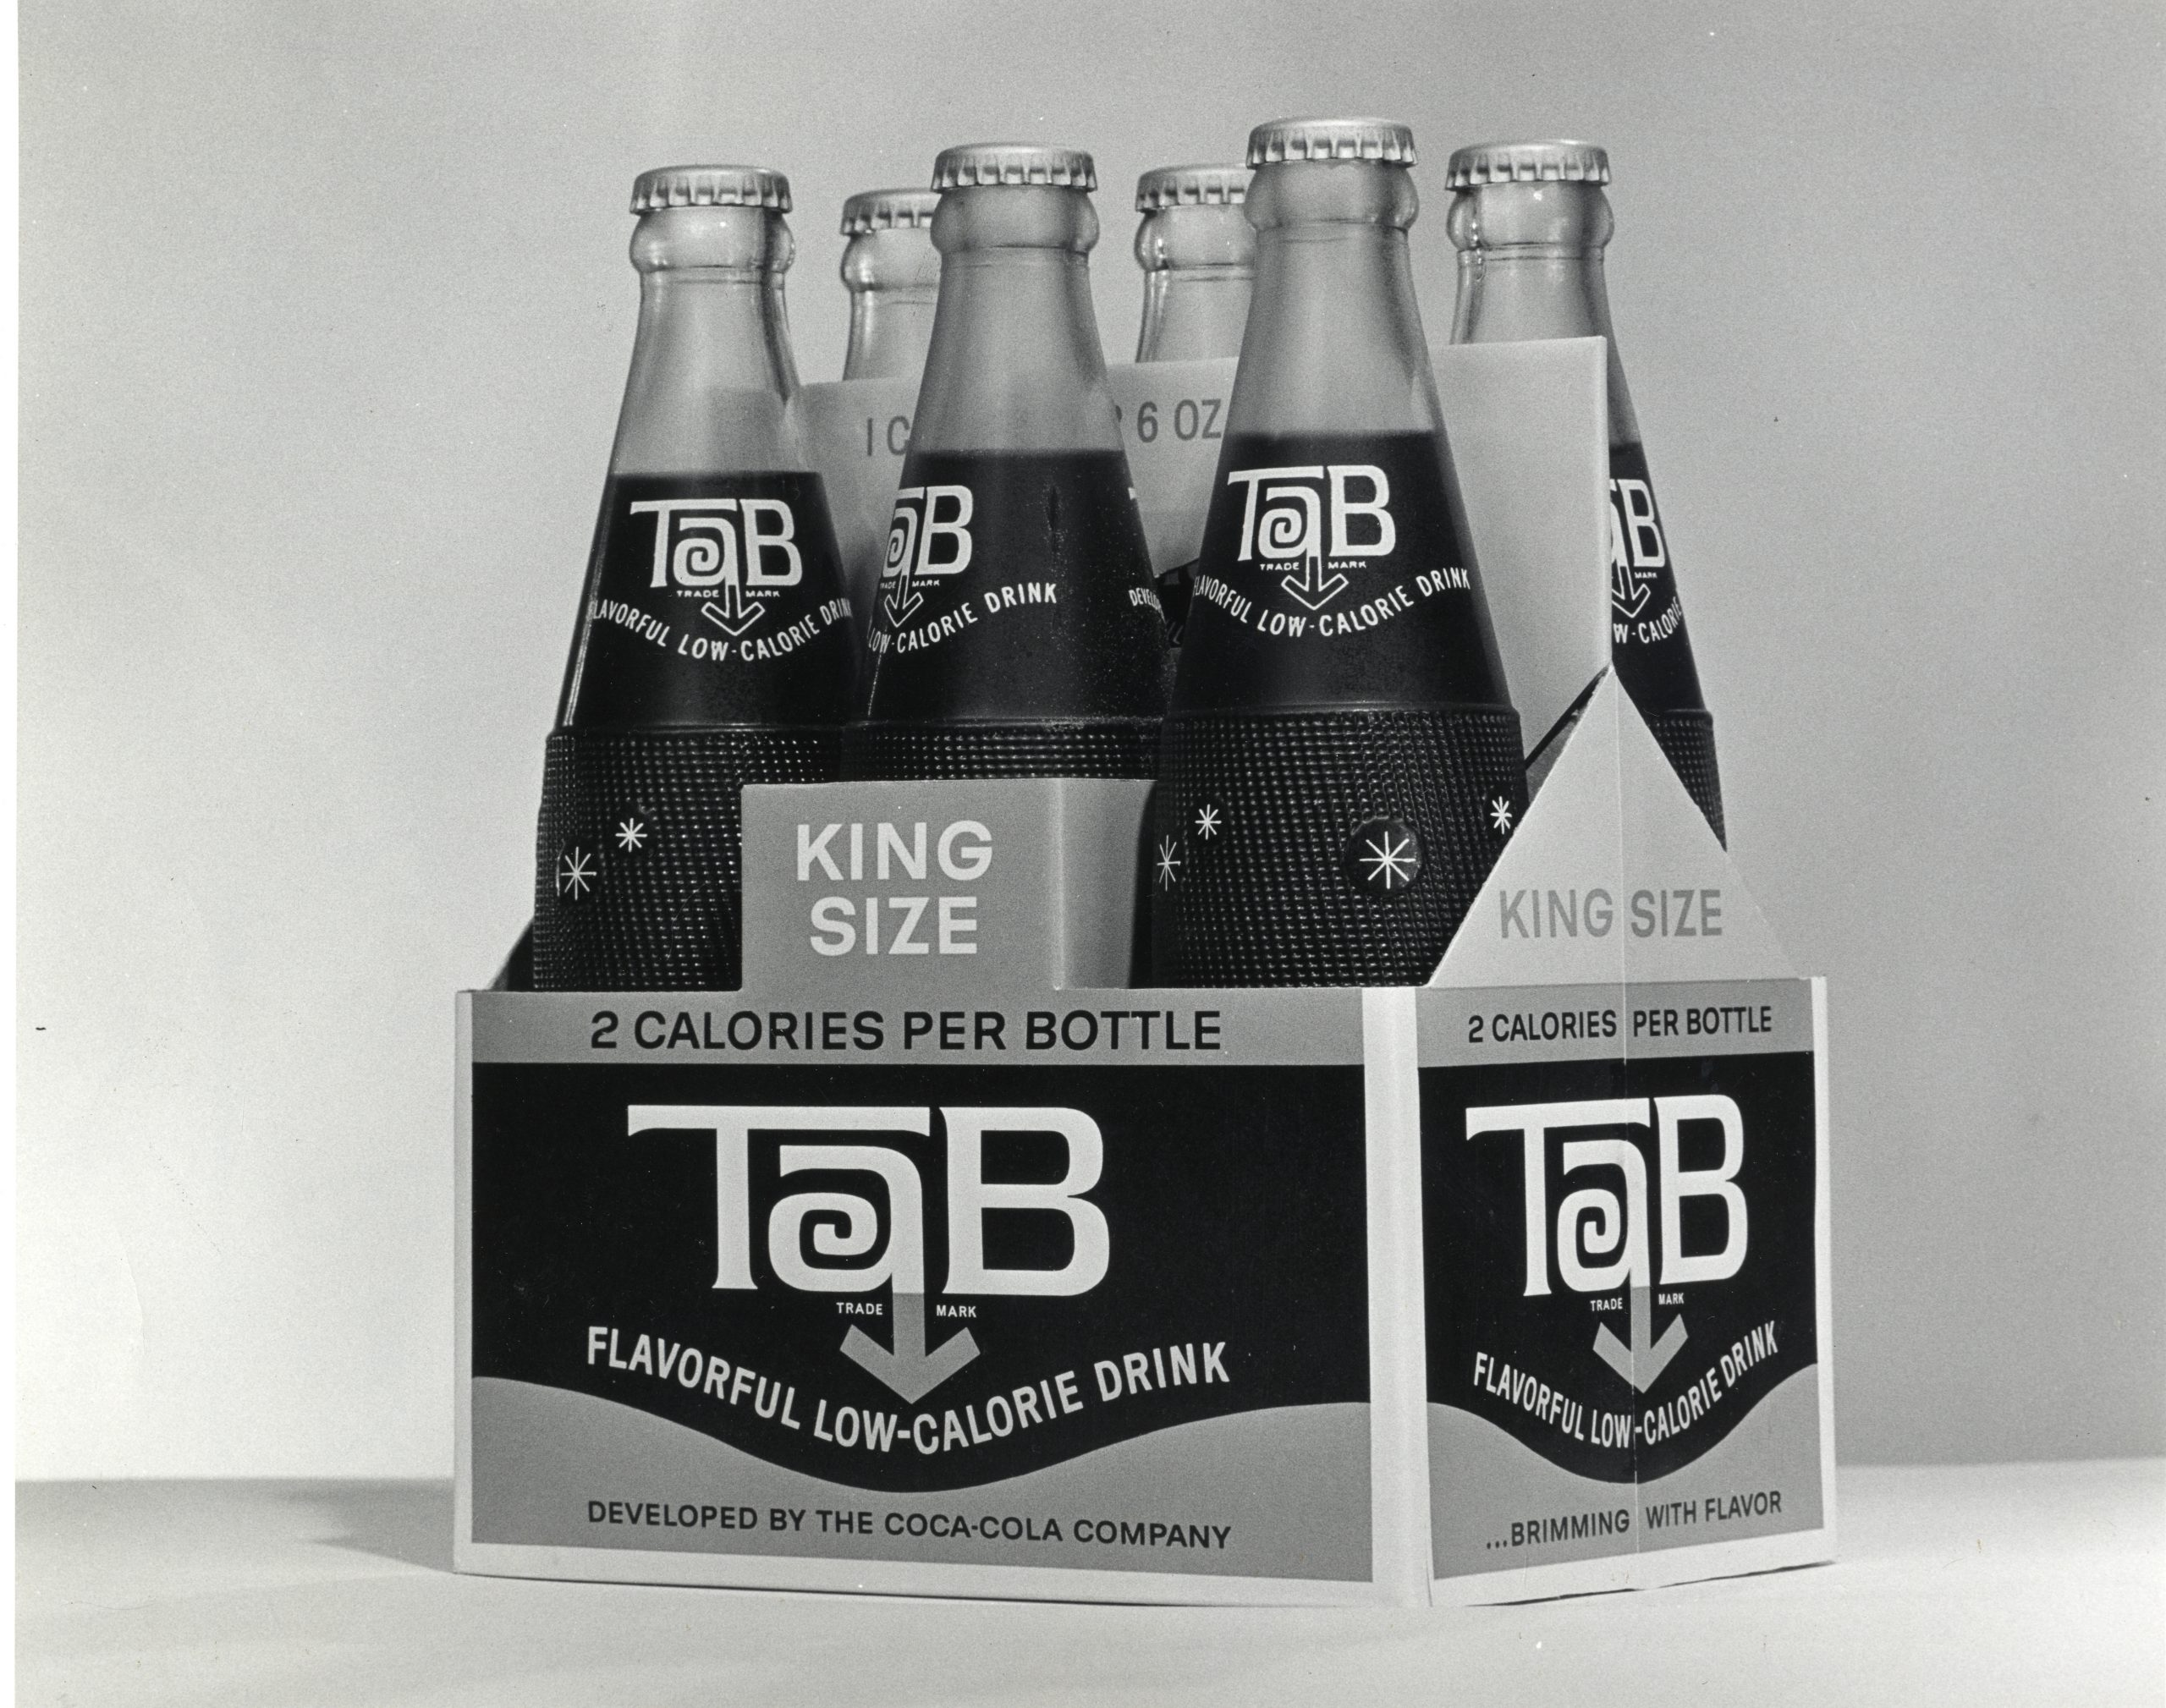 After 60 years, Coca-Cola announces the retirement of Tab, its iconic diet drink